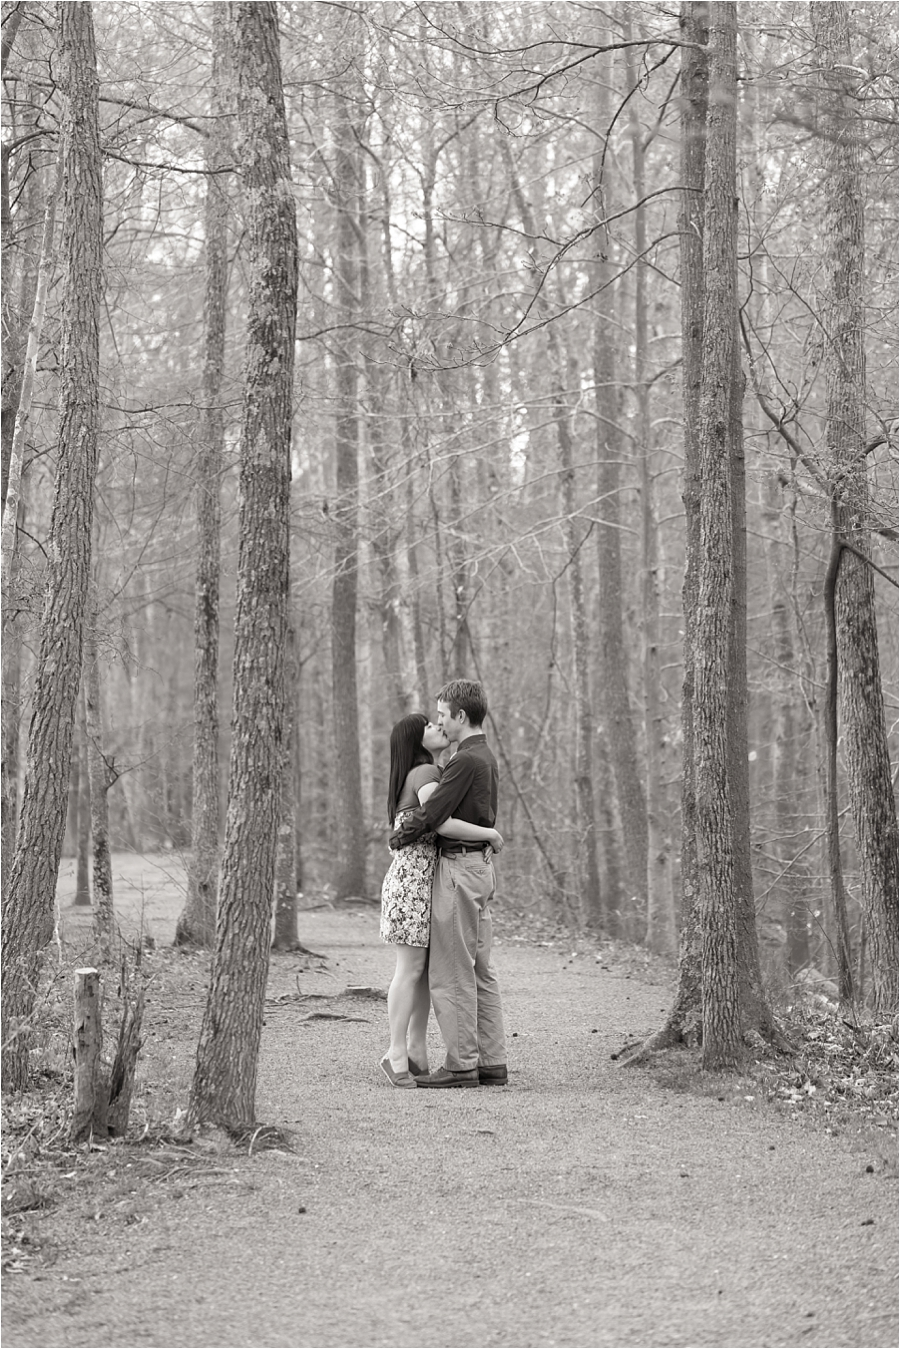 Nami_Michael_Virginia_Engagement_0003